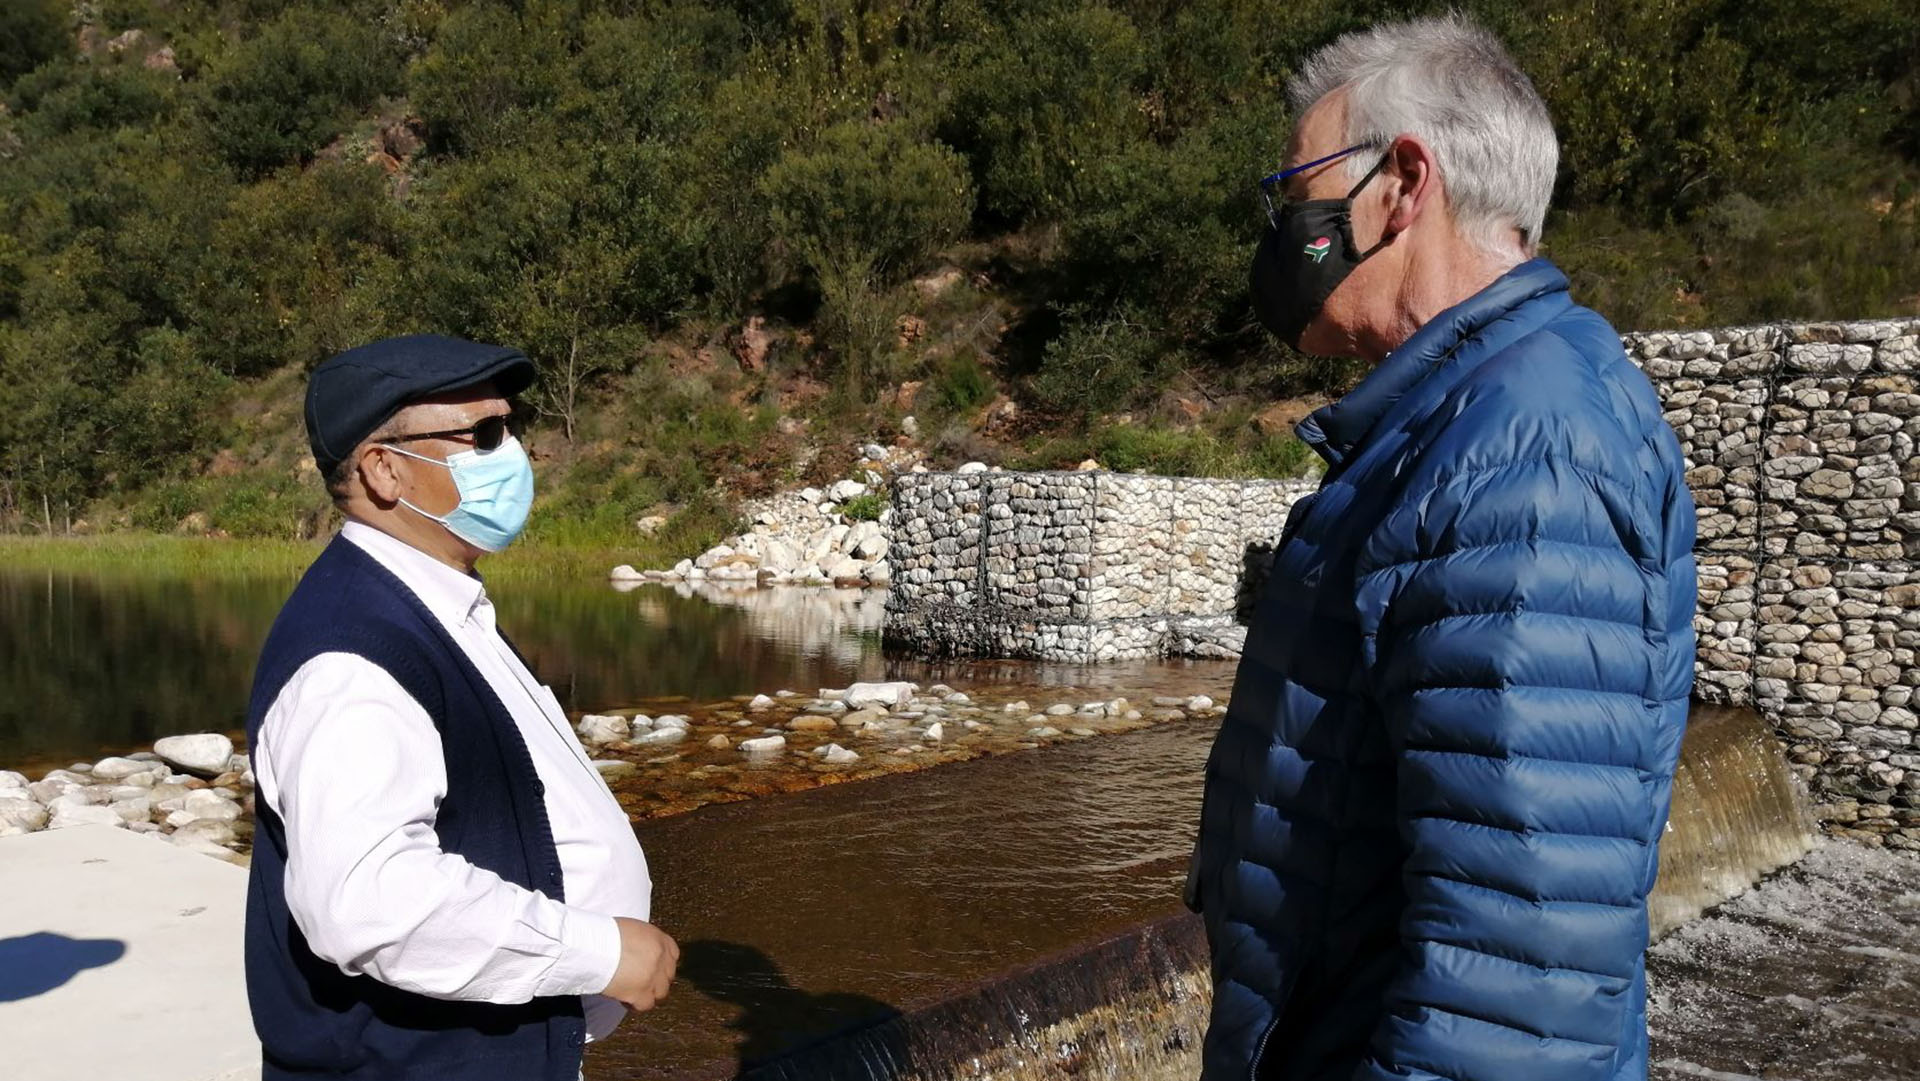 Western Cape agriculture MEC Dr Ivan Meyer and Hans King, designing engineer, with the Meul weir in the background. Photo: Supplied/Food For Mzansi